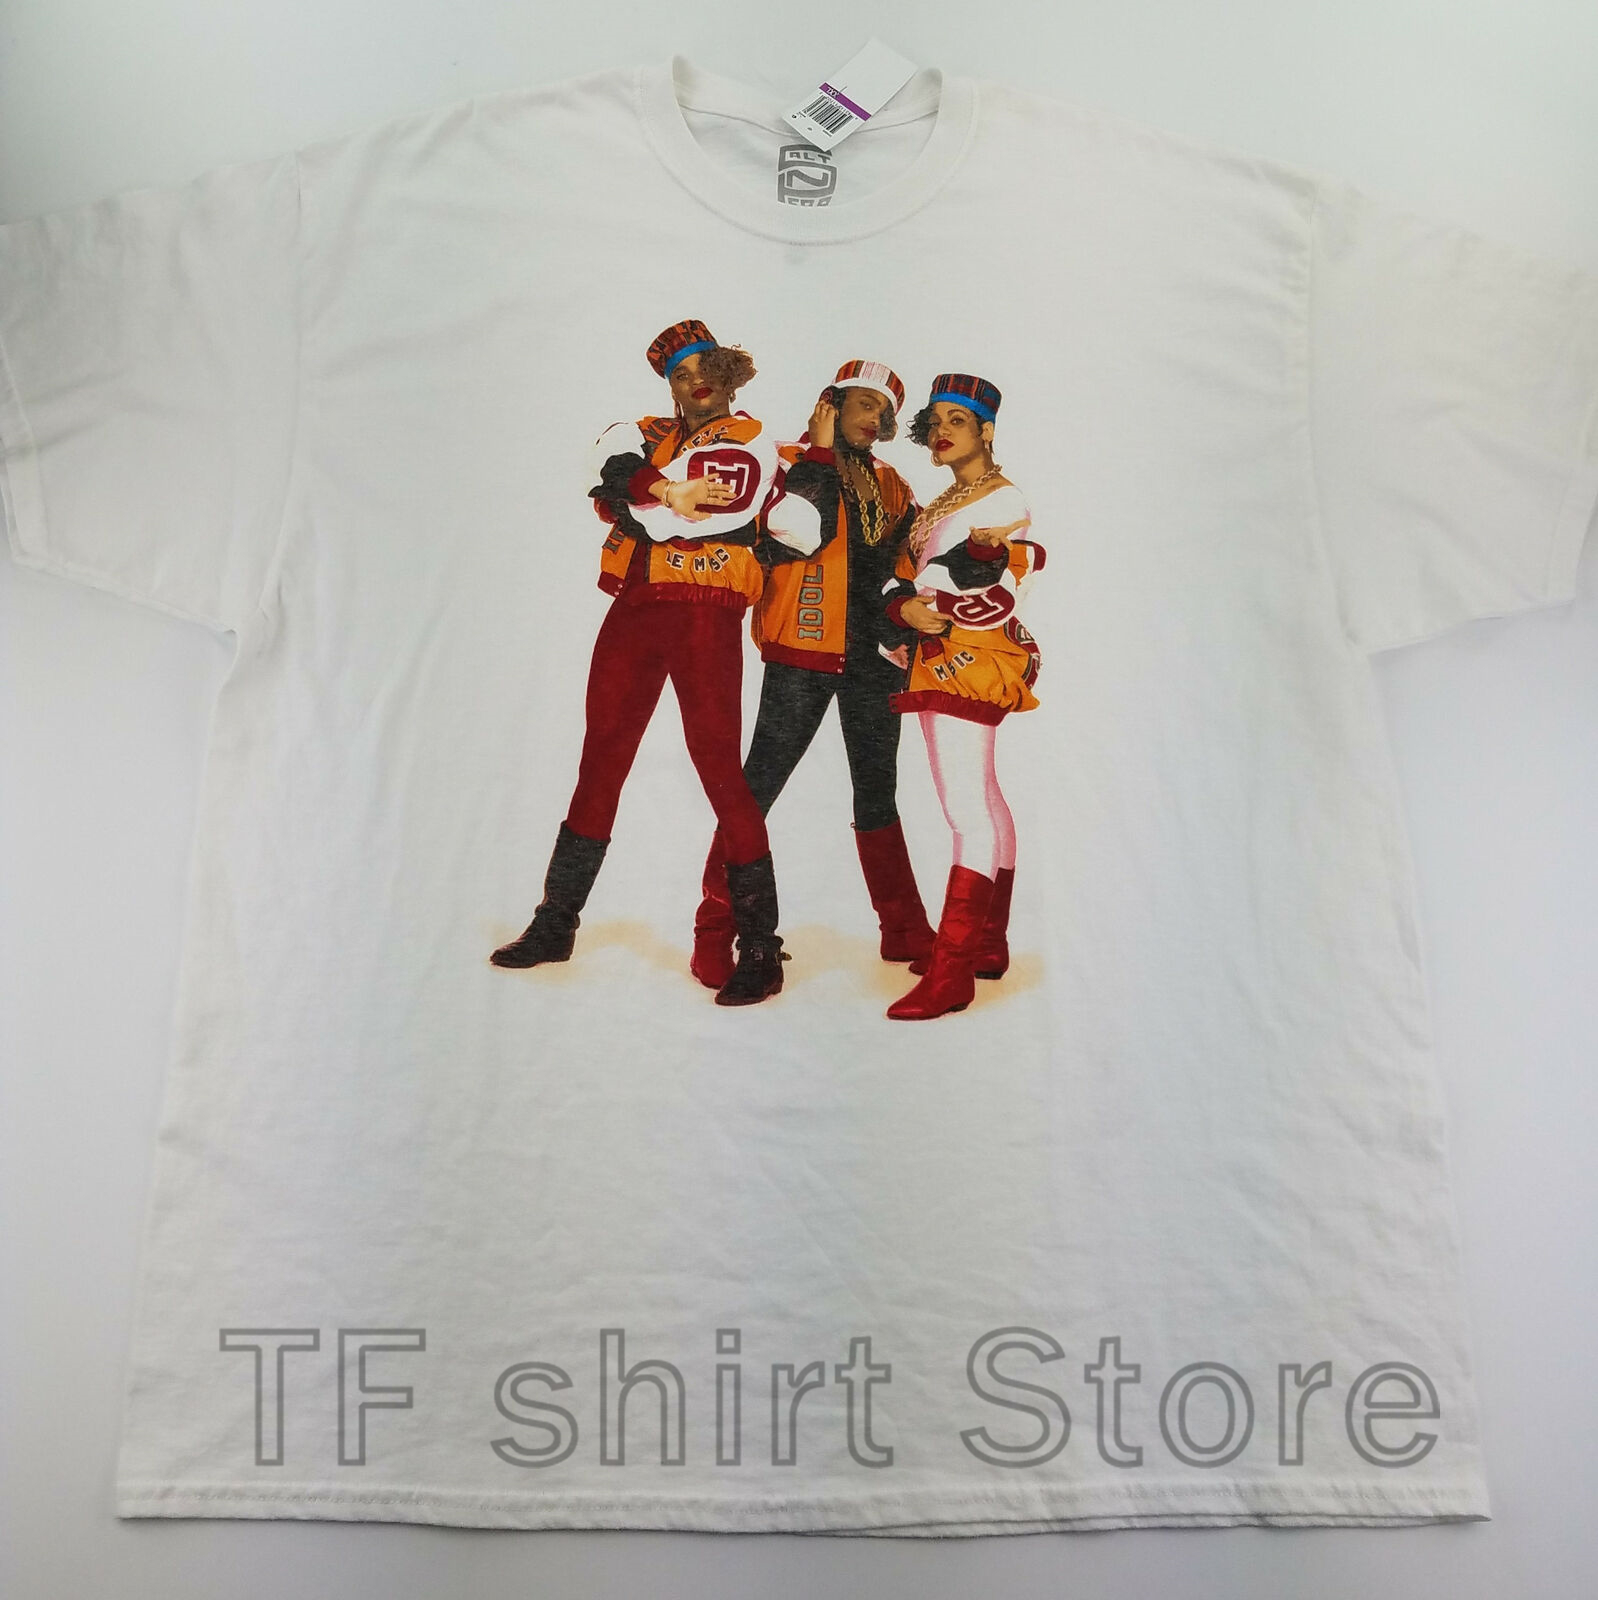 T-shirts Forceful Funny Print Men T Shirt Women Cool Tshirt Salt N Pepa Mens T-shirt 2xl Band Graphic Tee Crew White C18-15